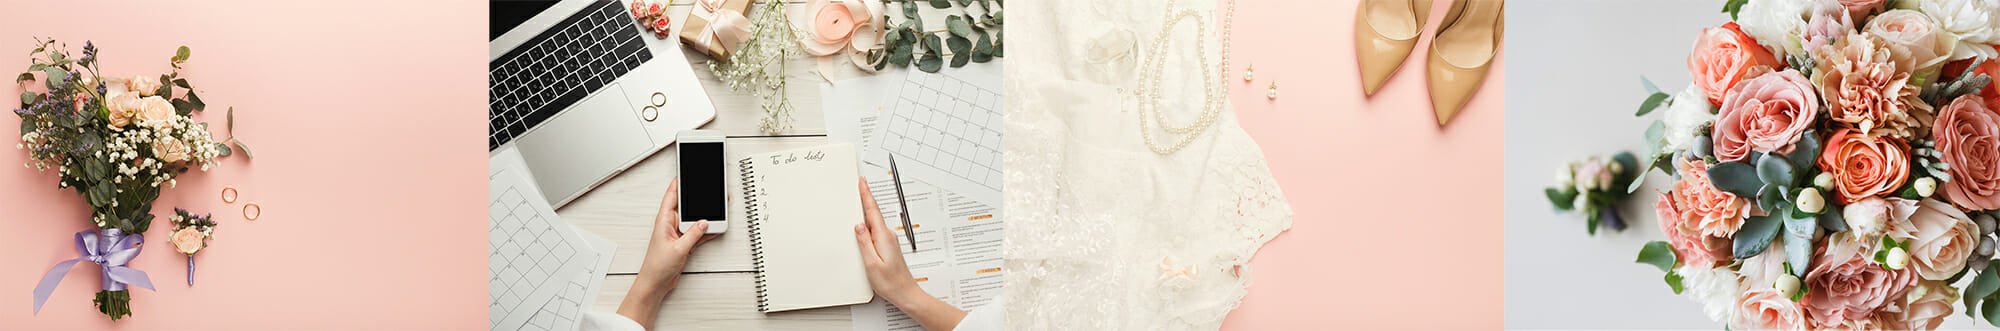 wedding photography tips bride groom pictures posing flowers laptop checklist planner shoes jewellery